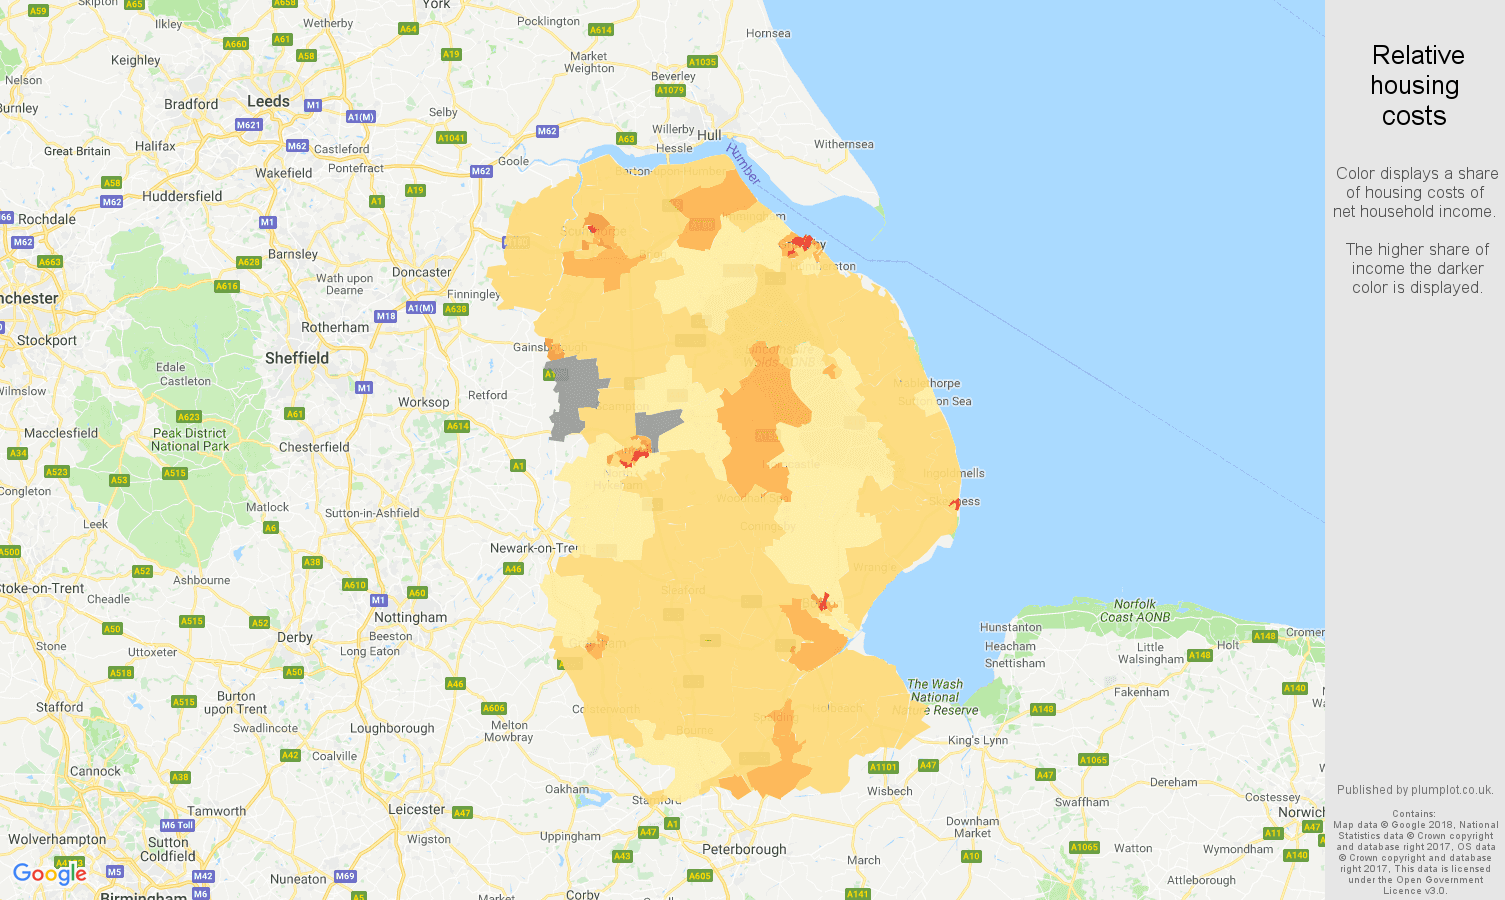 Lincolnshire relative housing costs map